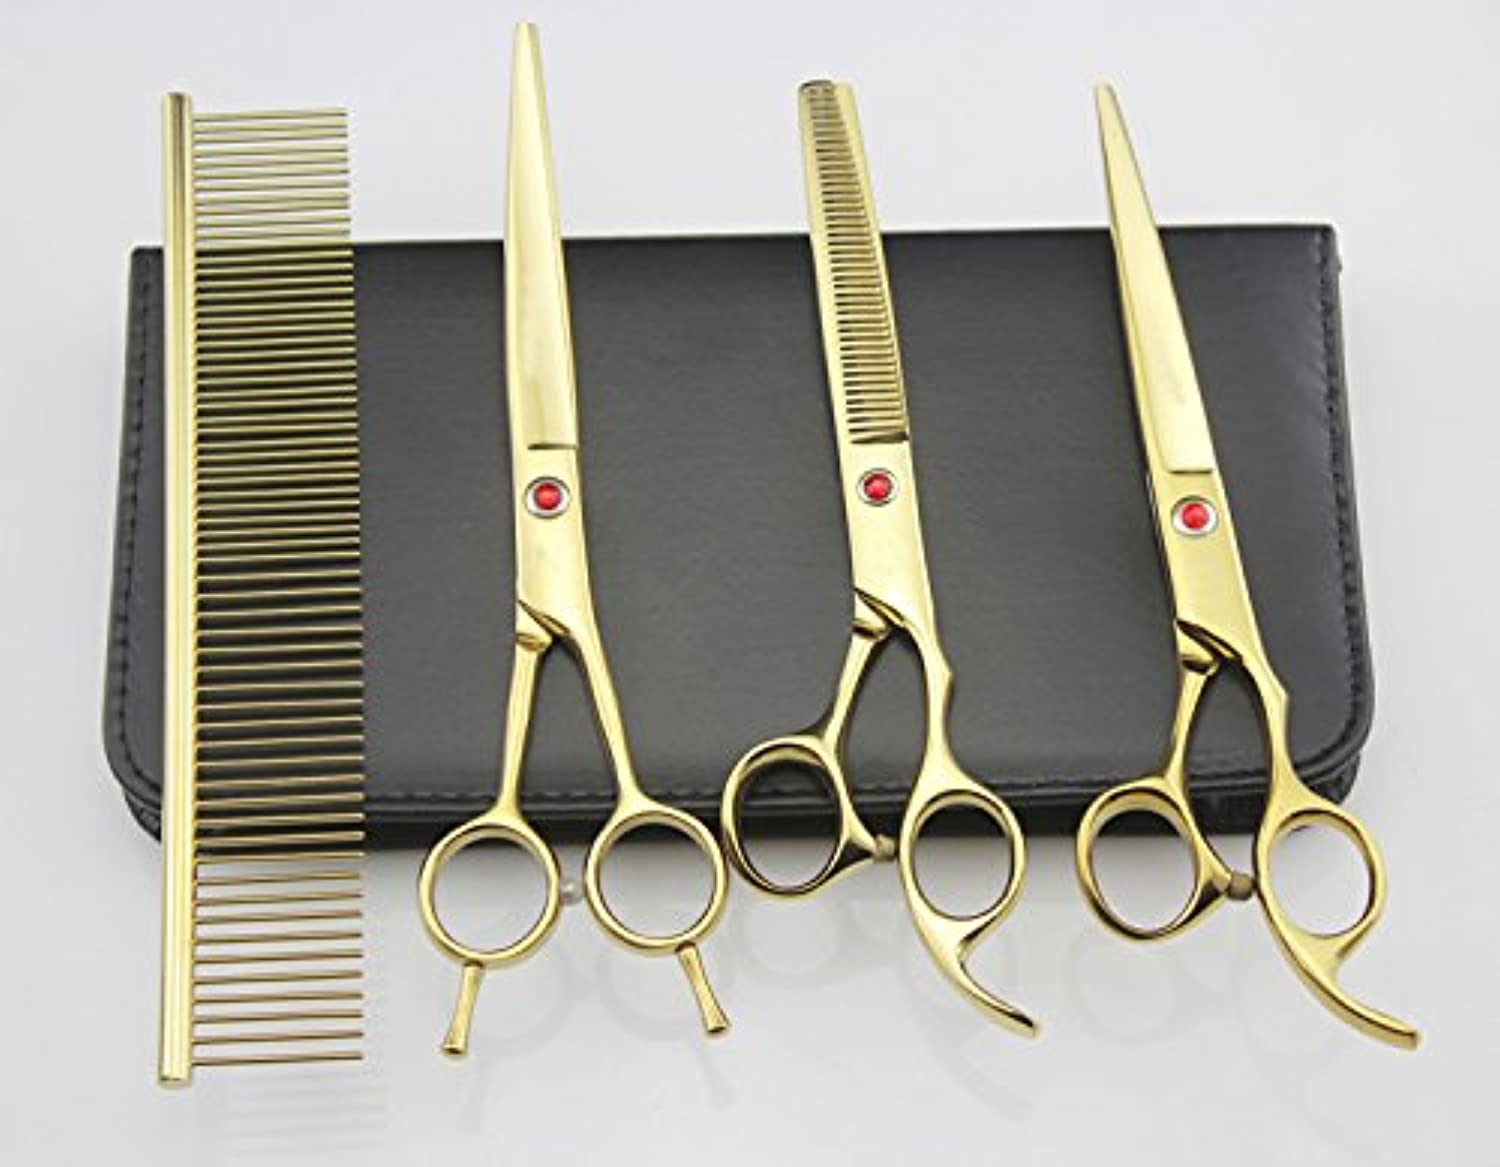 7.0in.Pet Grooming Scissors set, Straight *Thinning &ved forbici 4pcs set, set di governare cani, A428 (oro)